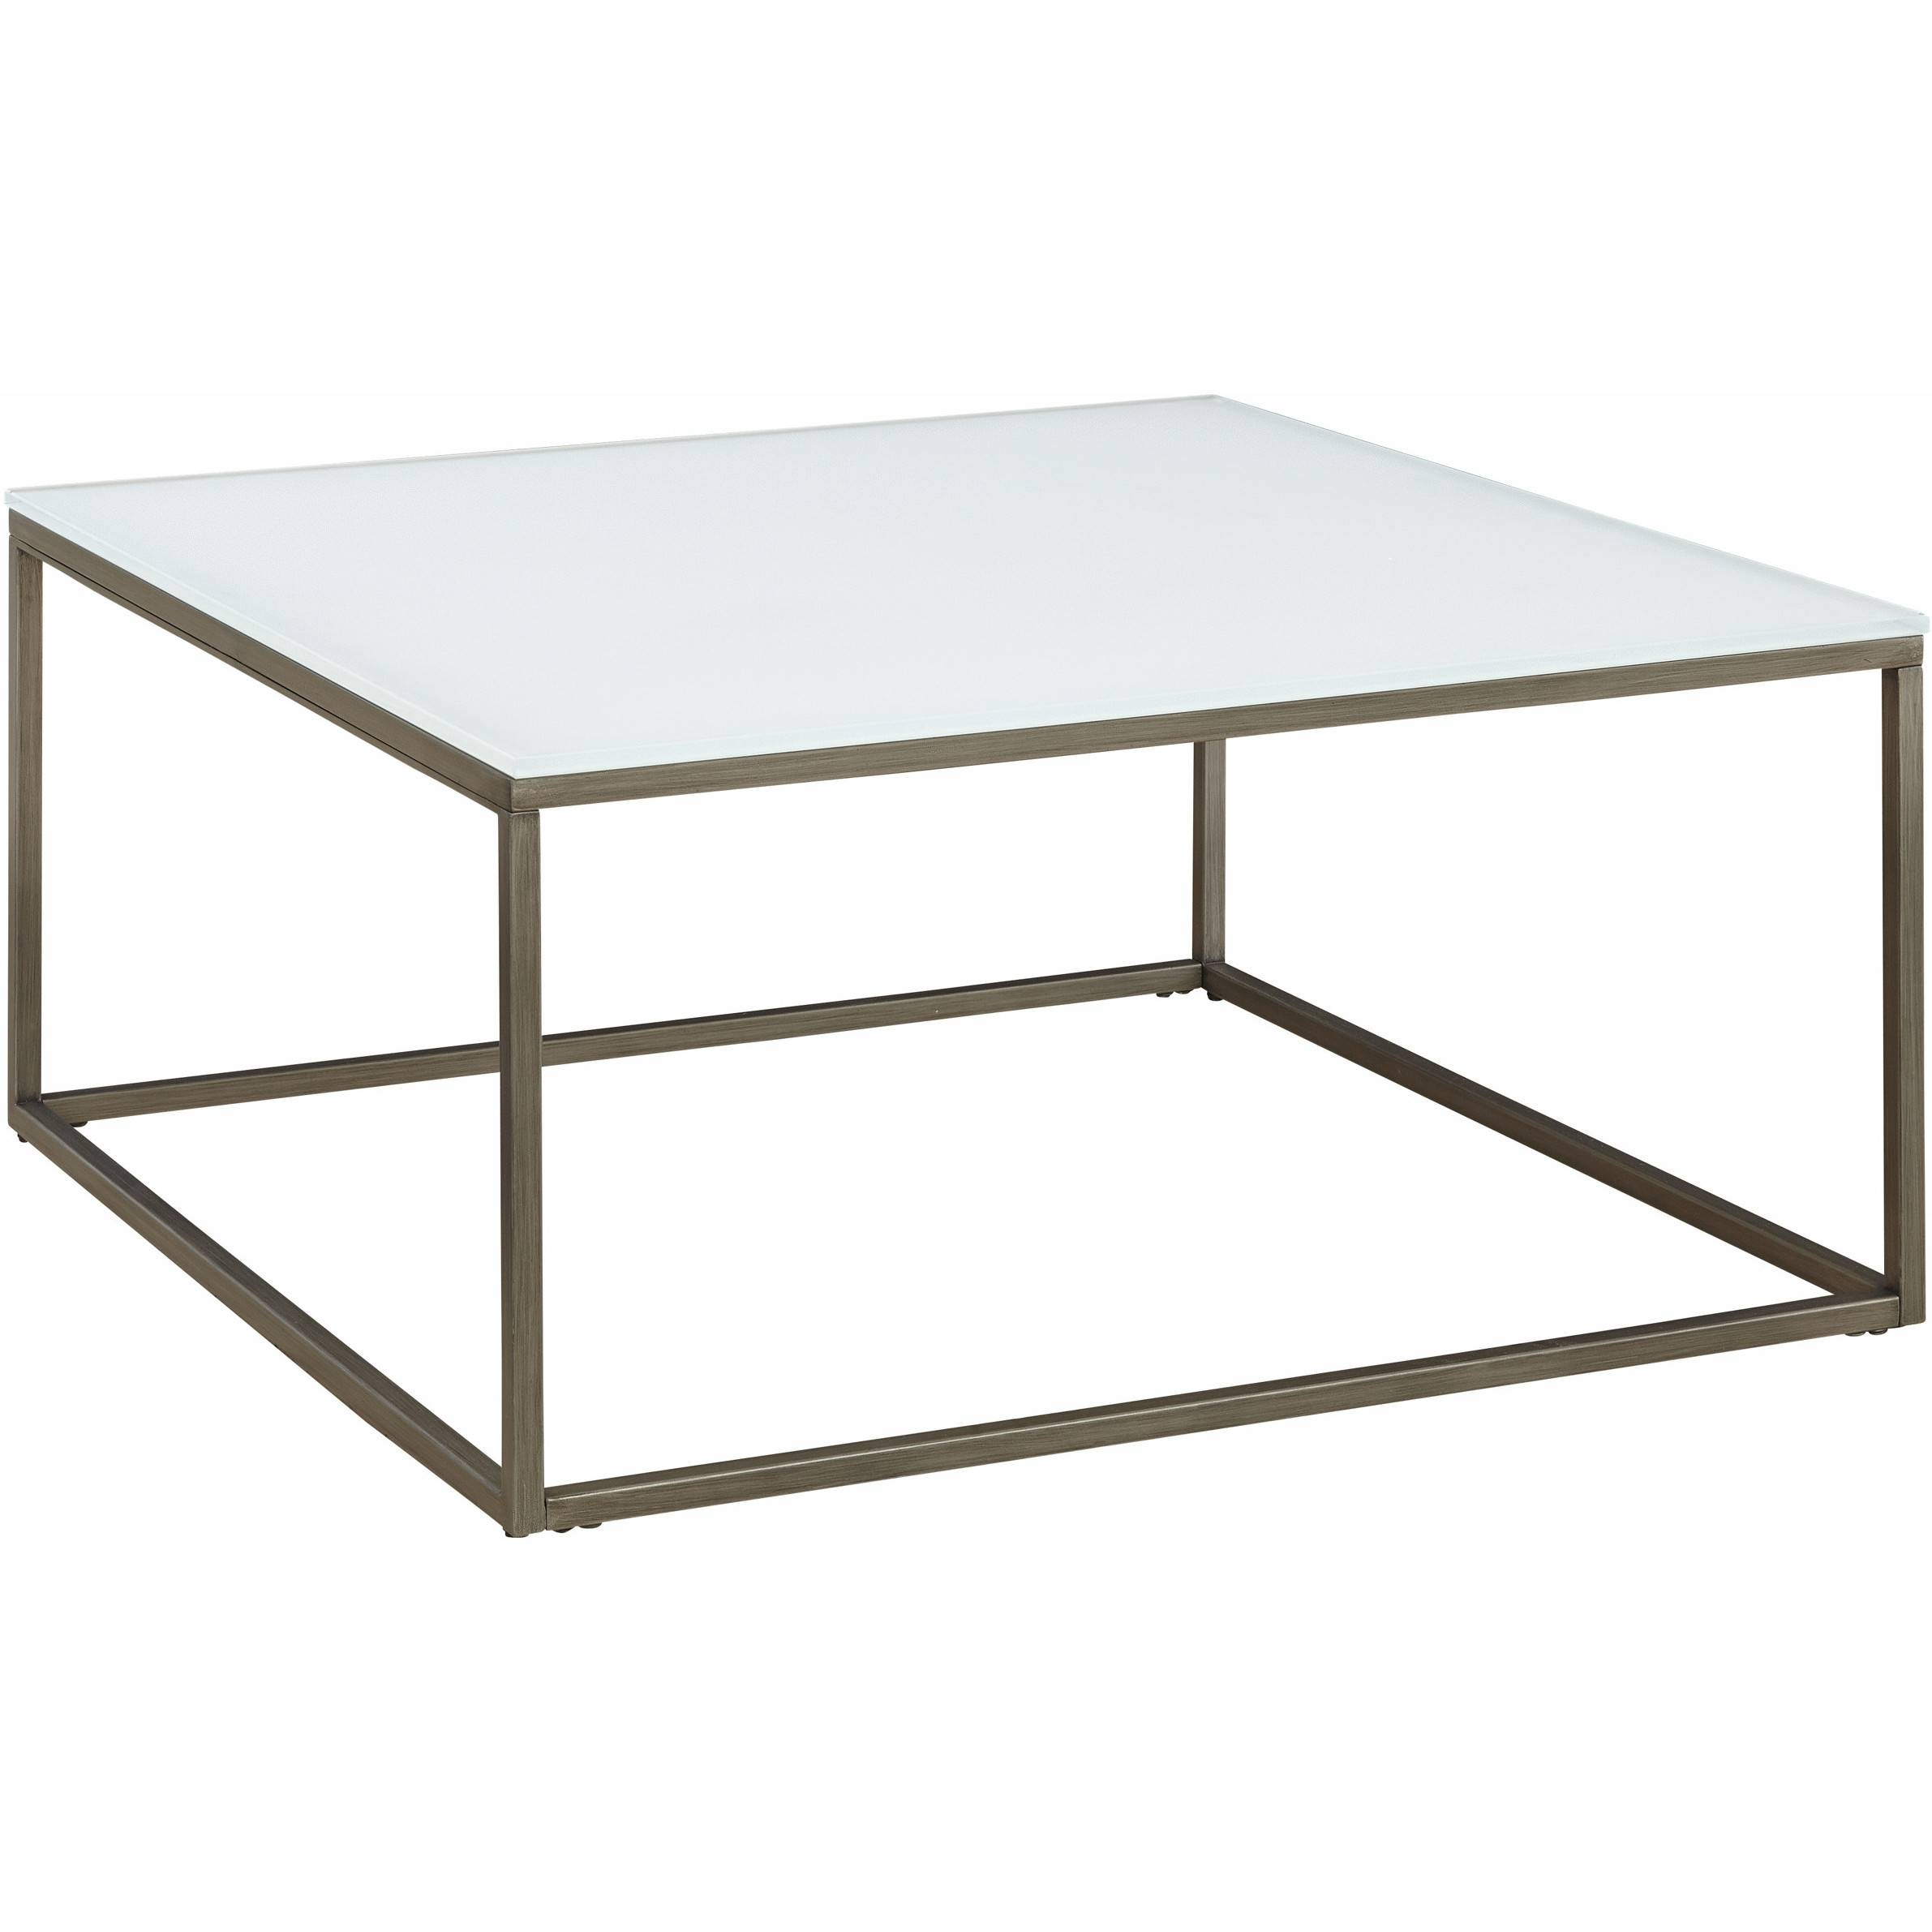 30 the best glass square coffee tables 48 inch square glass top coffee table coffee tables decoration inside glass square coffee tables geotapseo Gallery